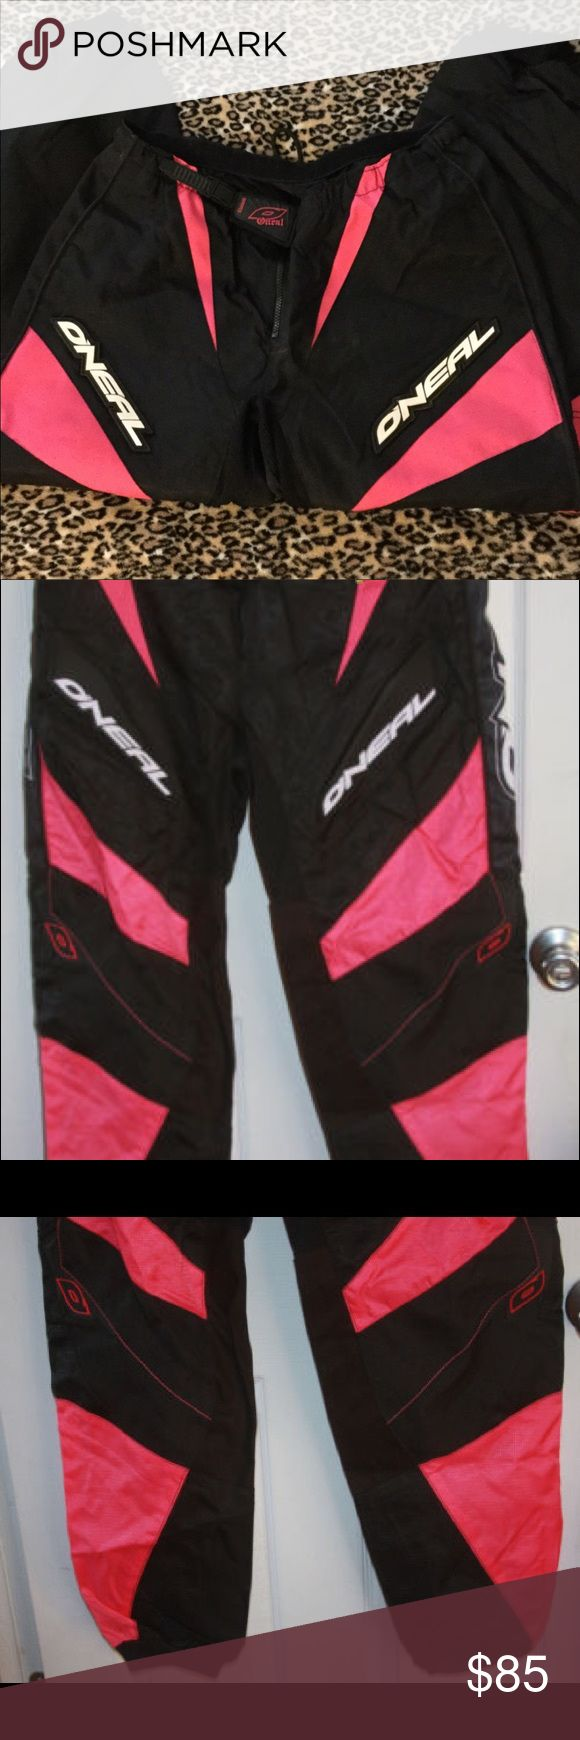 💗🔥O Neal FIRE Motorcycle Riding Pants 😭💗🤤🔥 Well I didn't want to sell these but I need the money. I received these from a trade but the other seller did not send me my items so I just want to sell this lol. These riding pants are ABSOLUTELY stunner and a must have for any fashionita's wardobe...riding pants and motorcycle clothes are SO in right now, ON TREND. these r beyond fire bb 🔥💗 Literally so cute, pair it with a bralette and boots SO cute wtf. Pink n black RARE trill a$$…